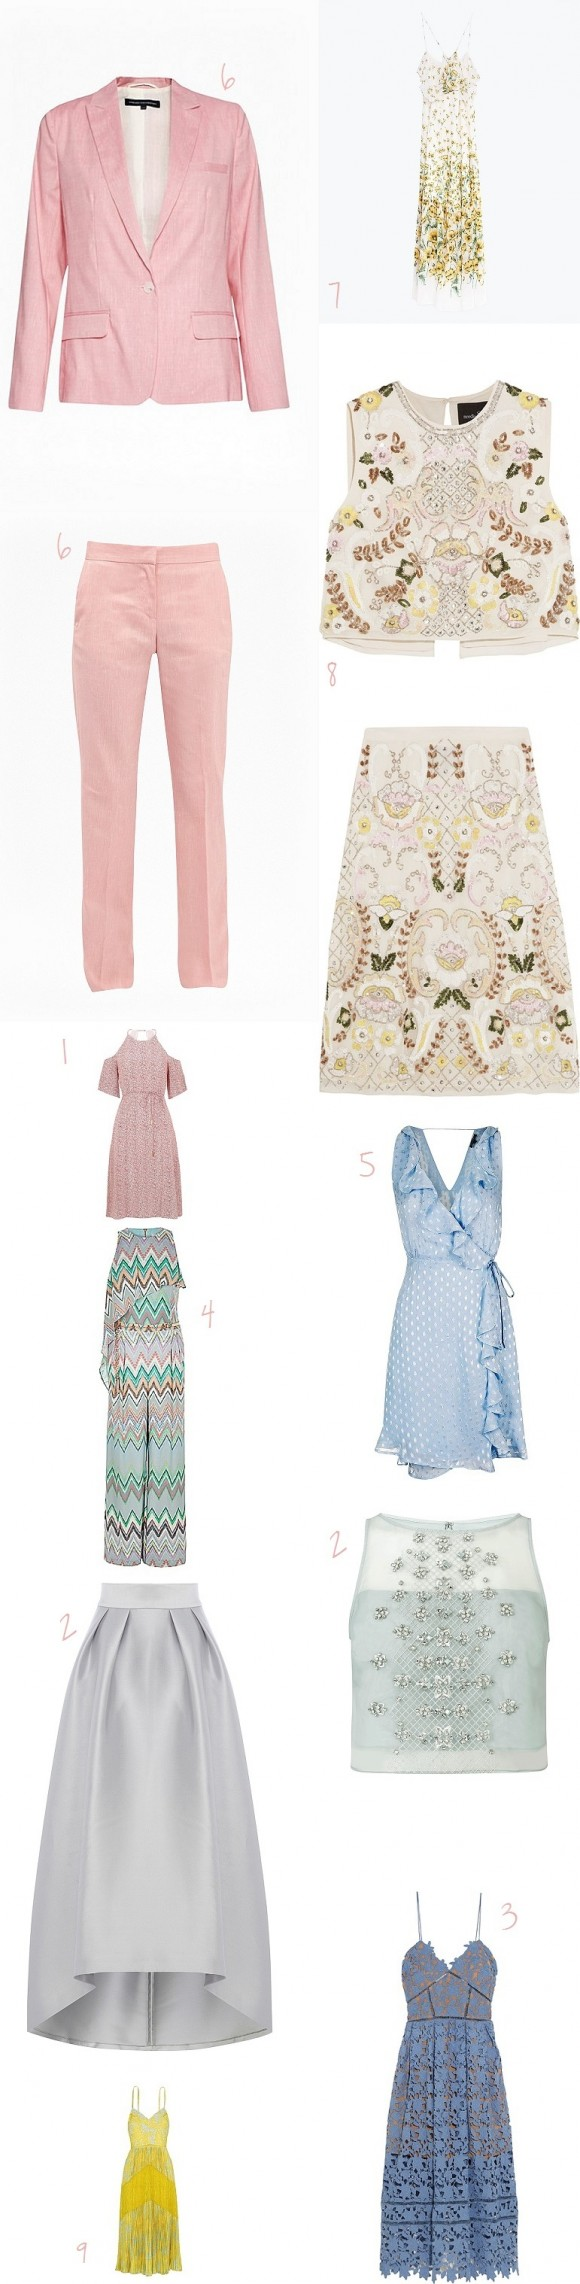 Summer Wedding High Street Haul - The Threads